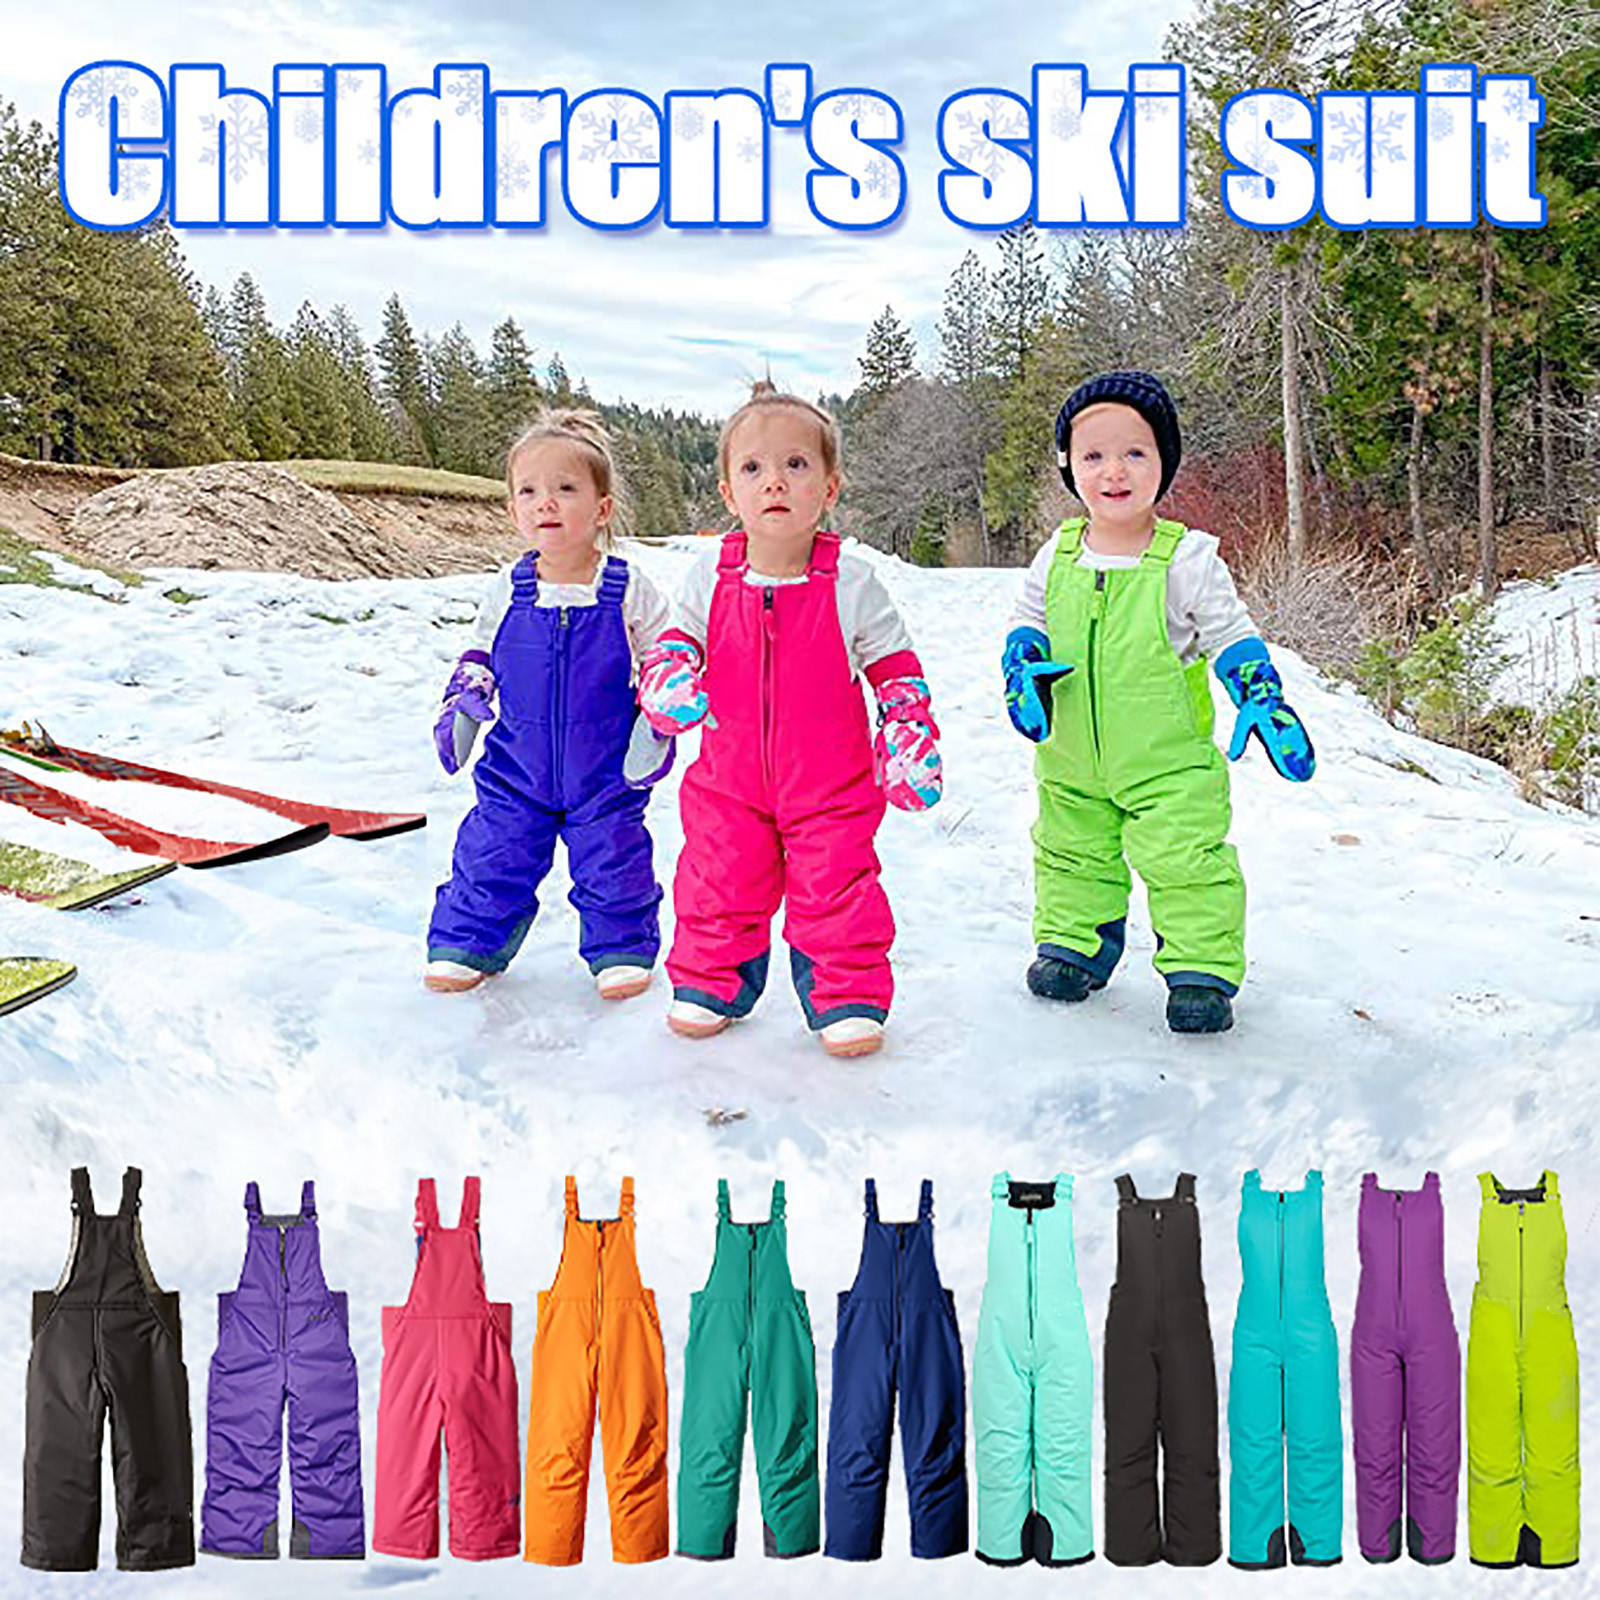 Infant/child Snow Skiing Pants Outdoor Ski Wear Toddler Chest High Snow Bib Overalls Waterproof Warm Snowboarding Trousers